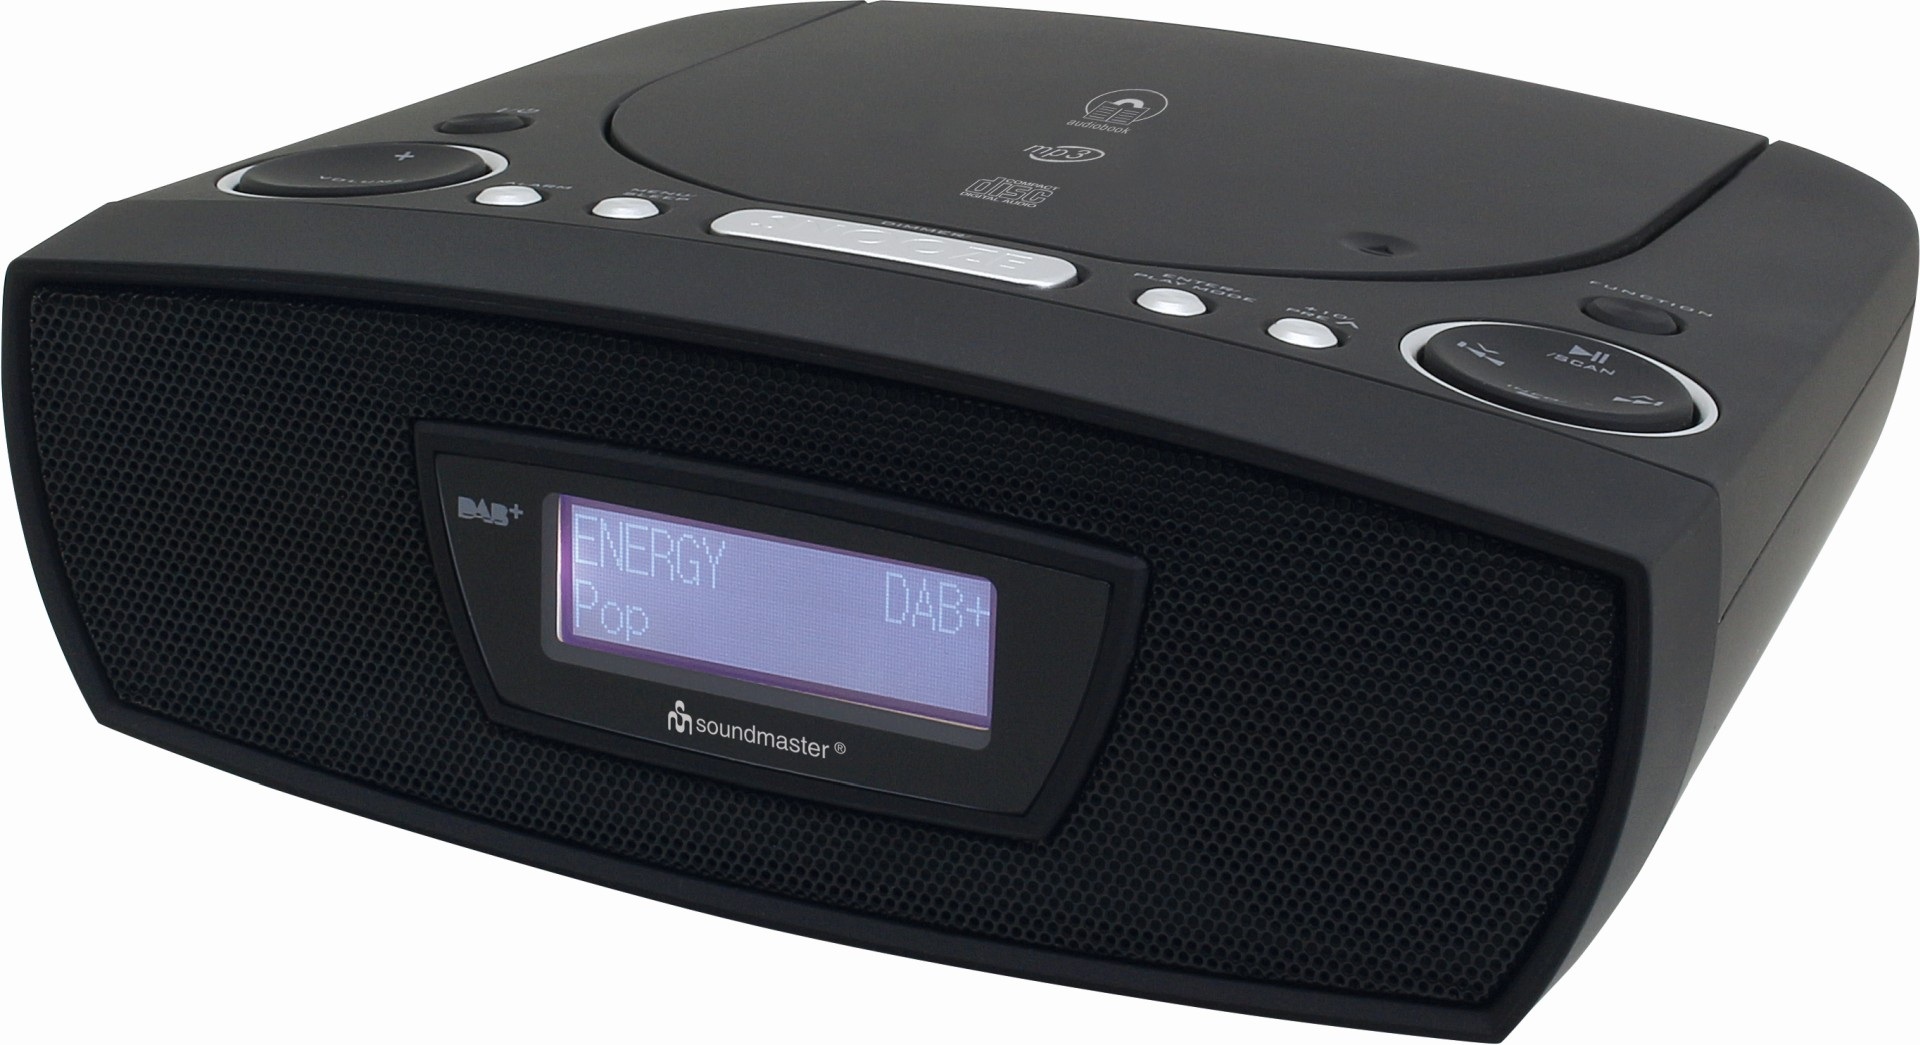 soundmaster urd480sw dab ukw digitaluhrenradio mit cd mp3. Black Bedroom Furniture Sets. Home Design Ideas